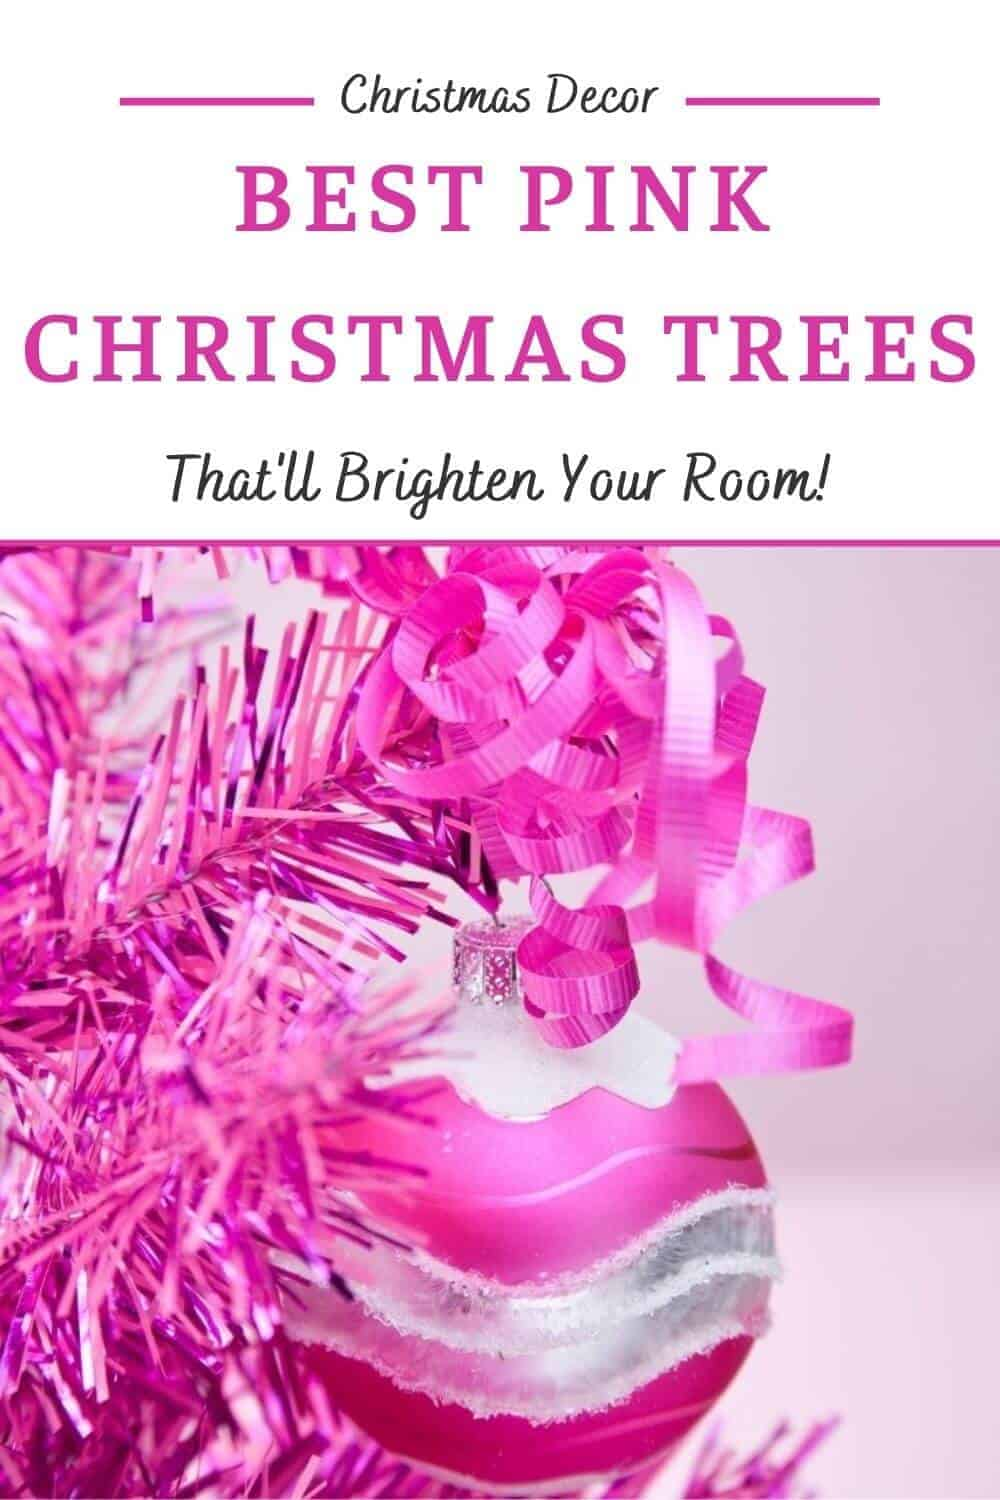 Best Pink Christmas Trees